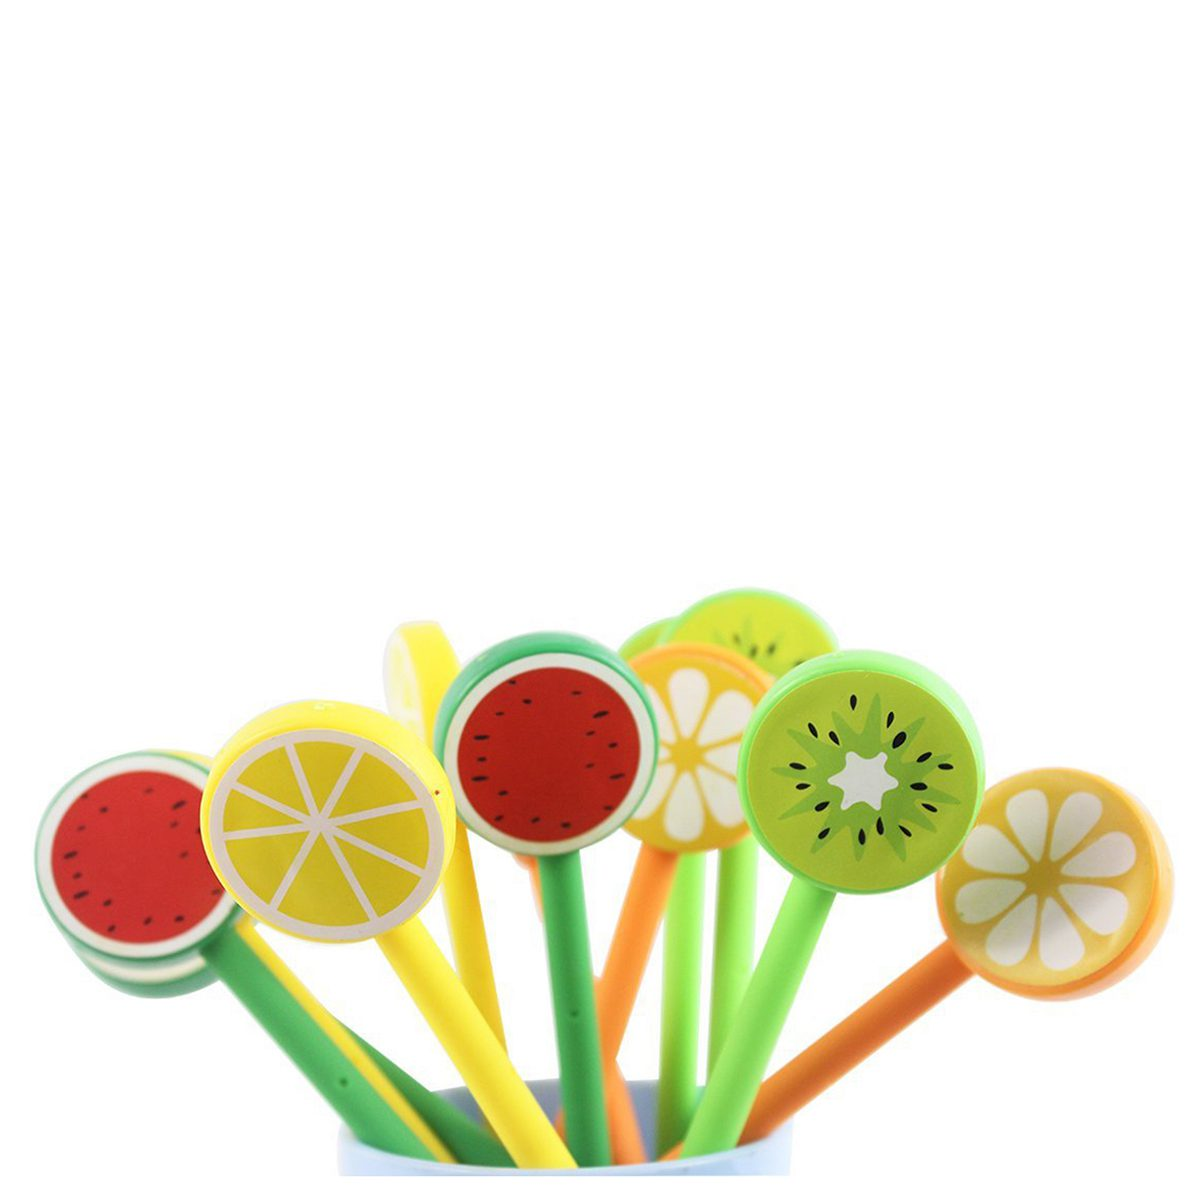 Affordable Fresh fruit creative cartoon Rollerball Gel Ink Refill Pen Set,A group of 12,Random Color 140 page note paper creative fruit design